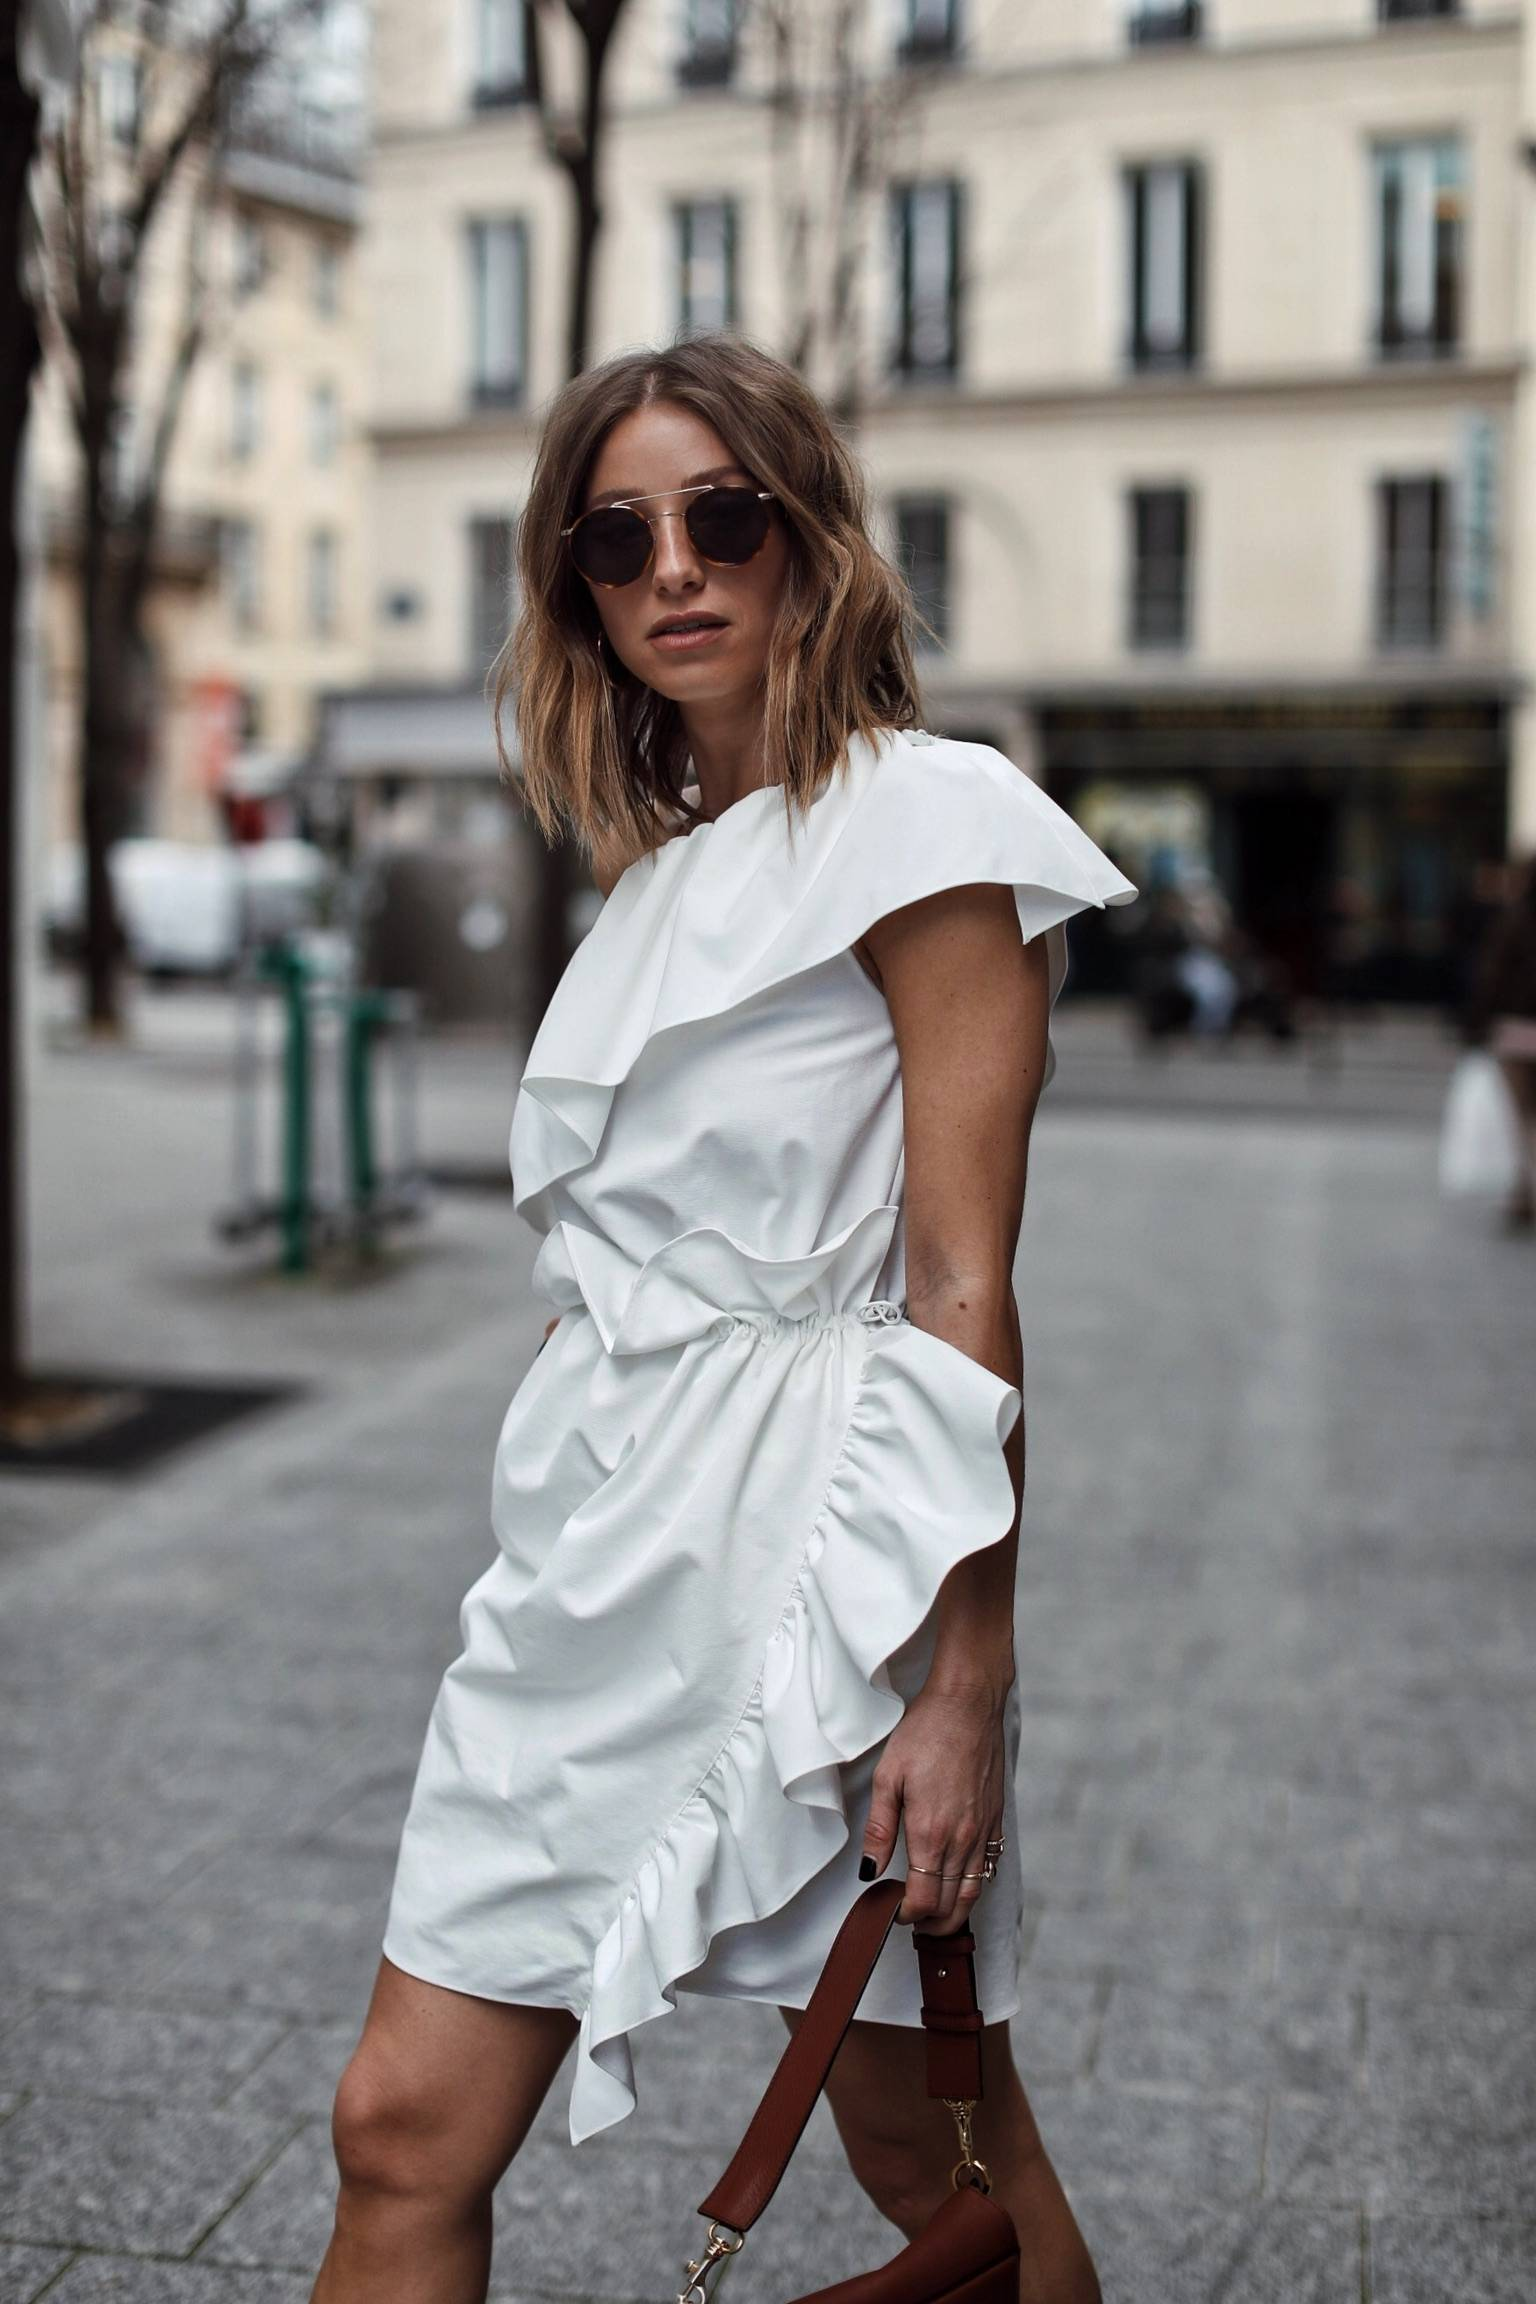 Style and beauty blogger Jill Lansky of The August Diaries on the top 5 white pieces for spring